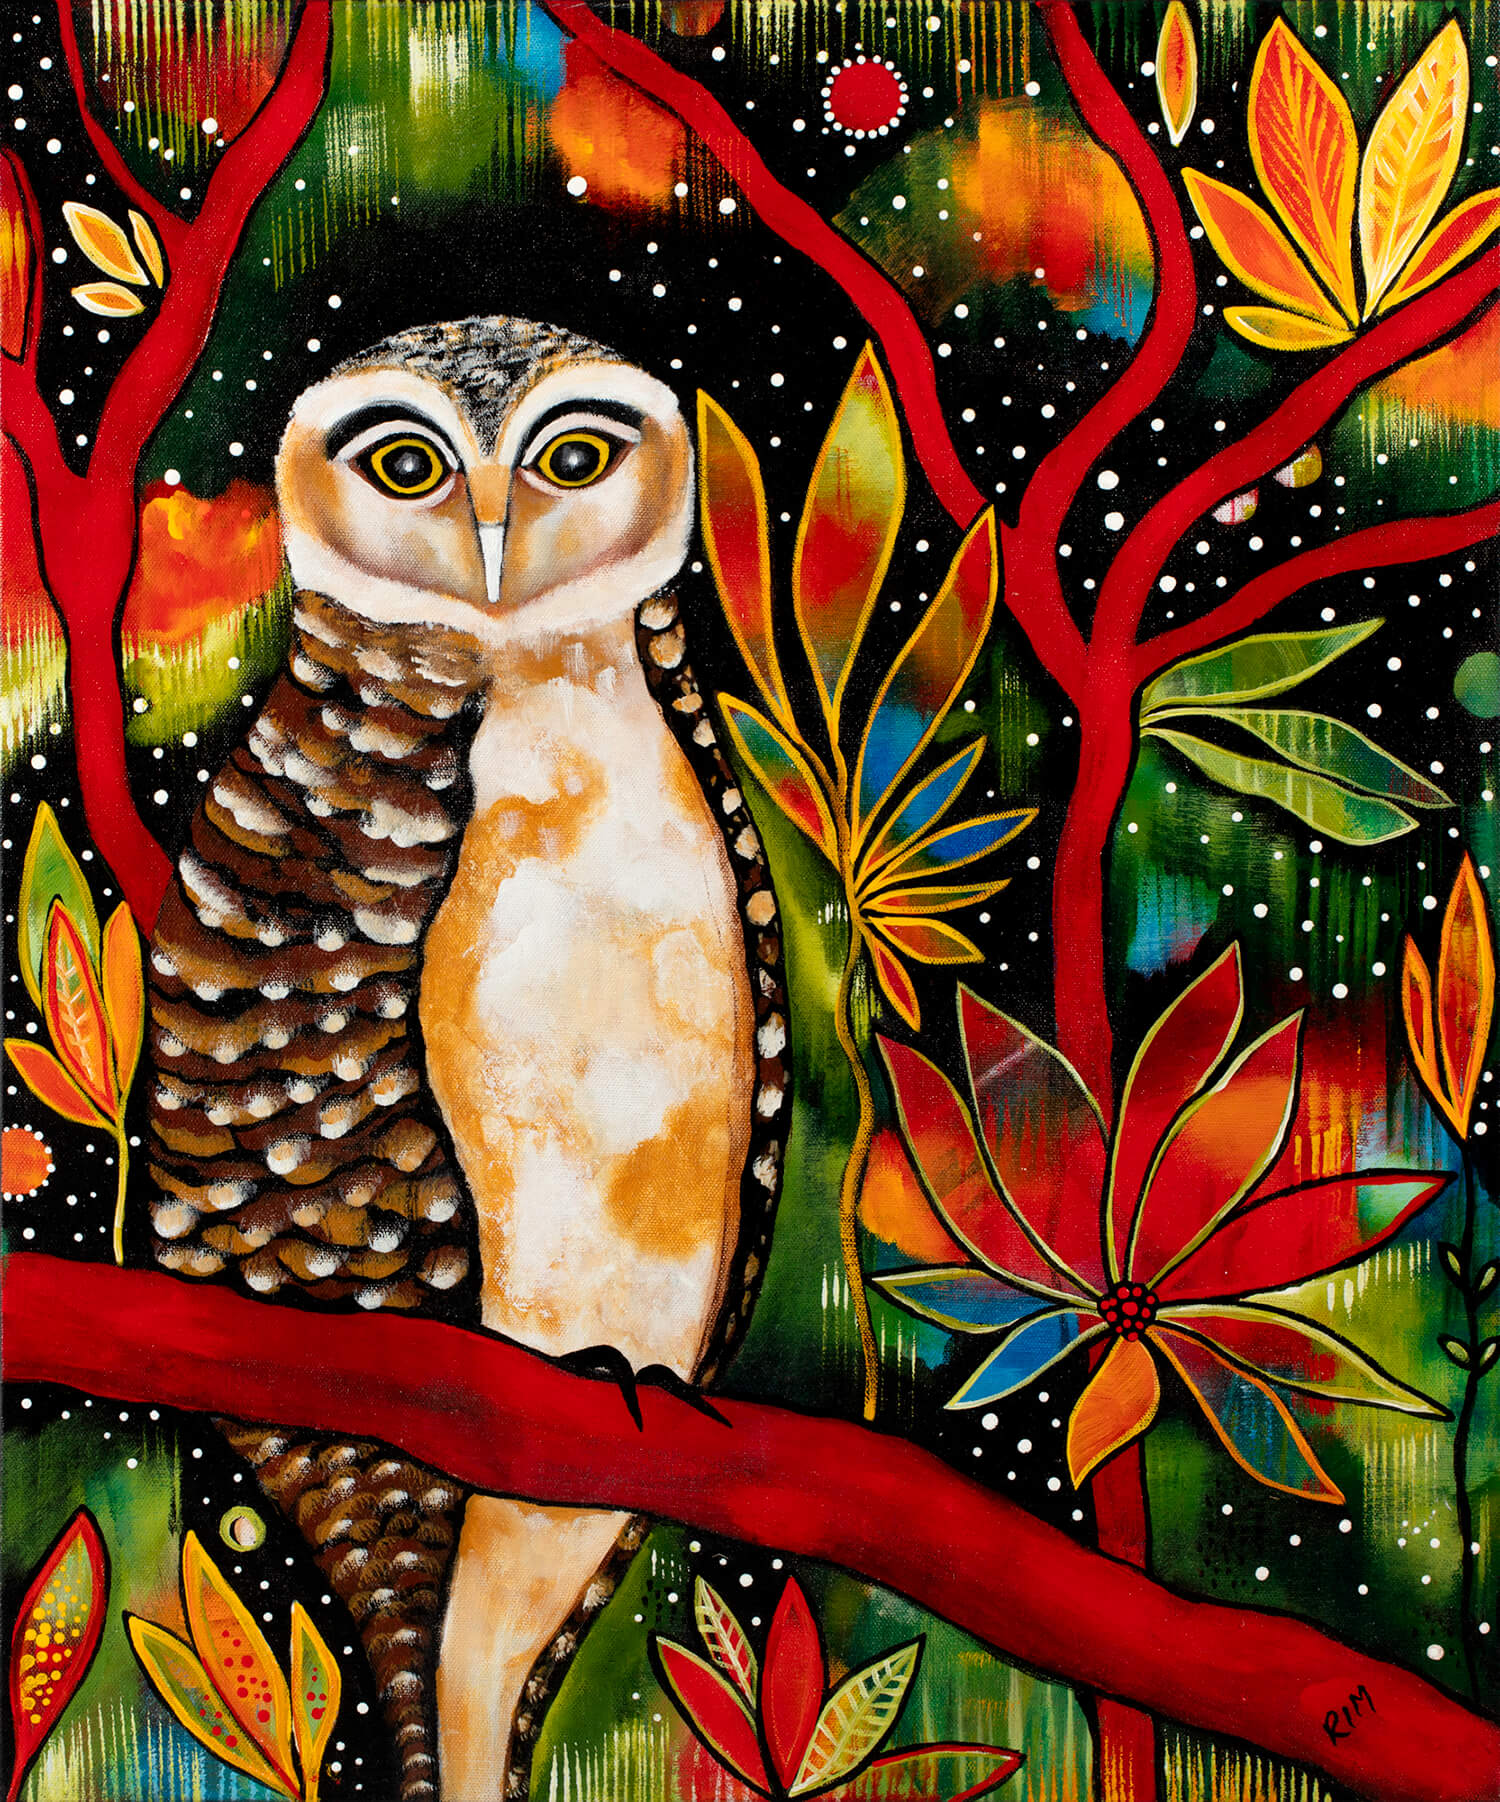 Big John (The Powerful Owl) Original Artwork